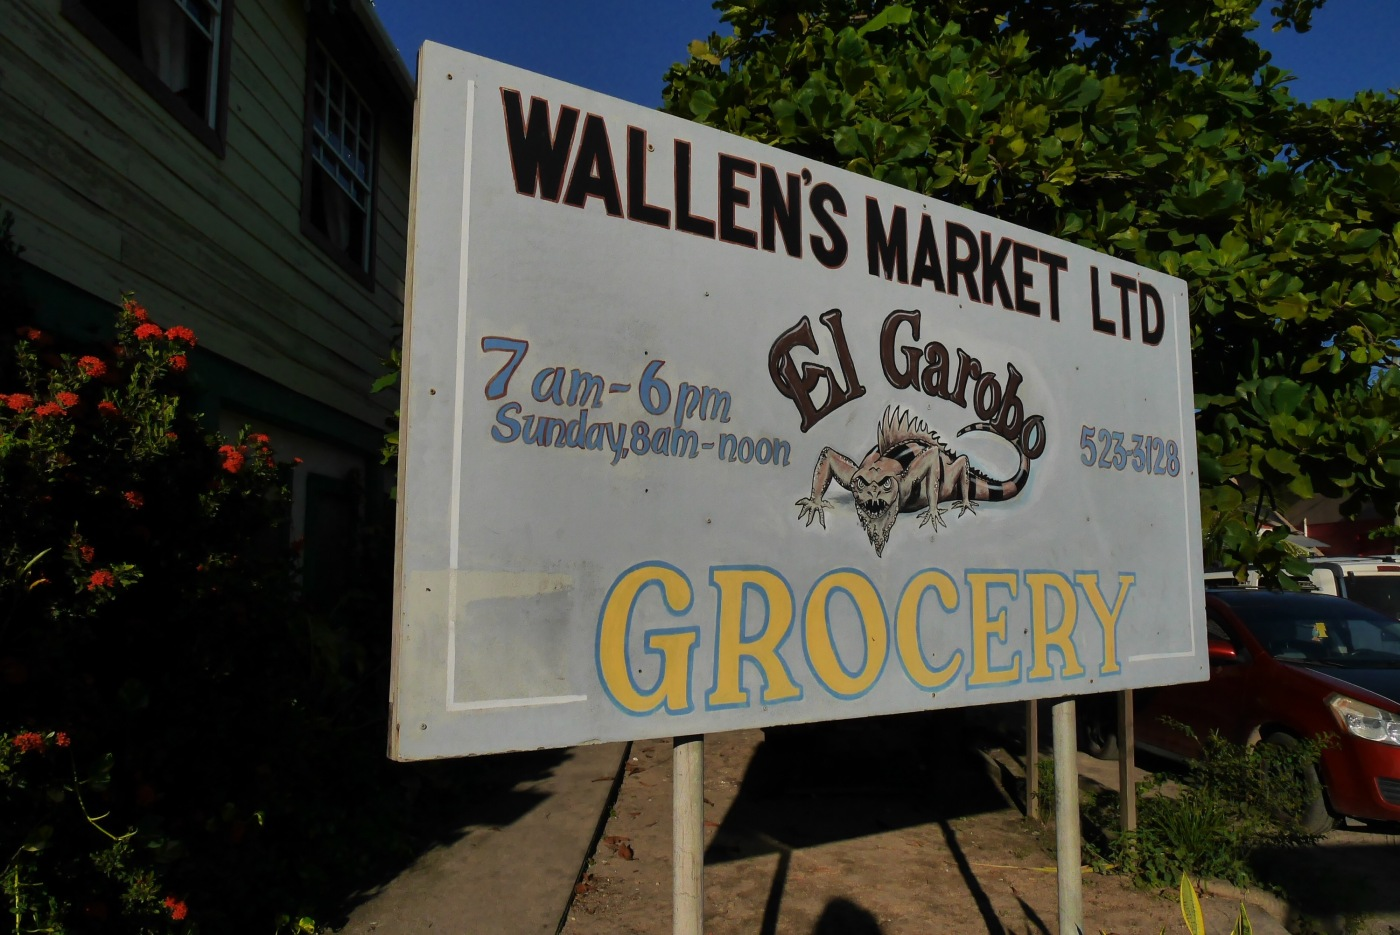 Wallen's Market sign